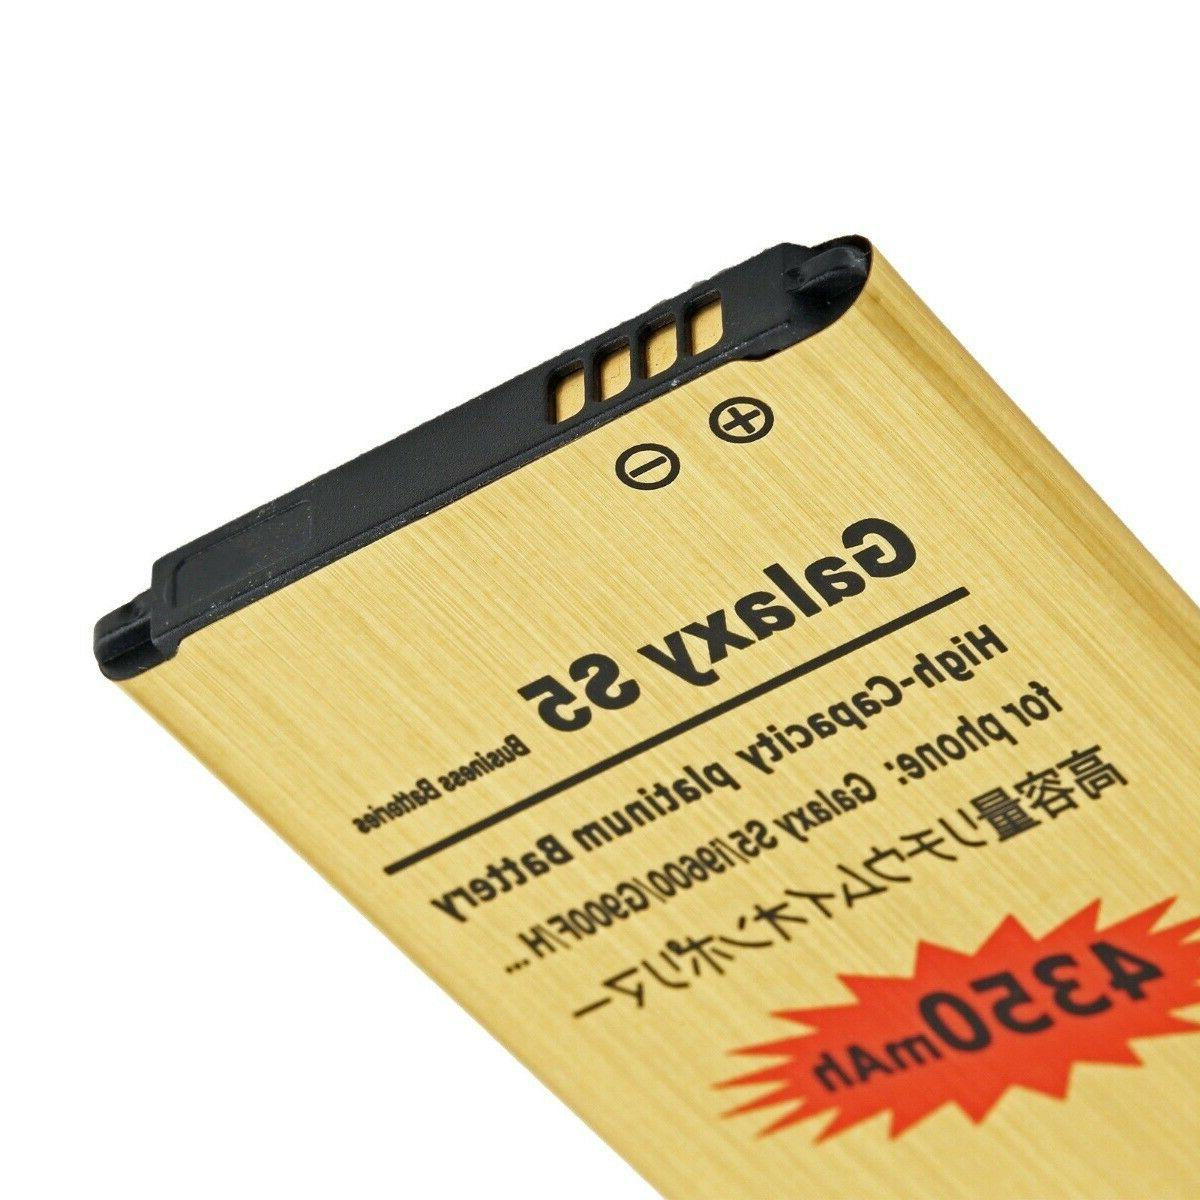 4350mAh High-Capacity Gold Battery & Charger for Galaxy G900A